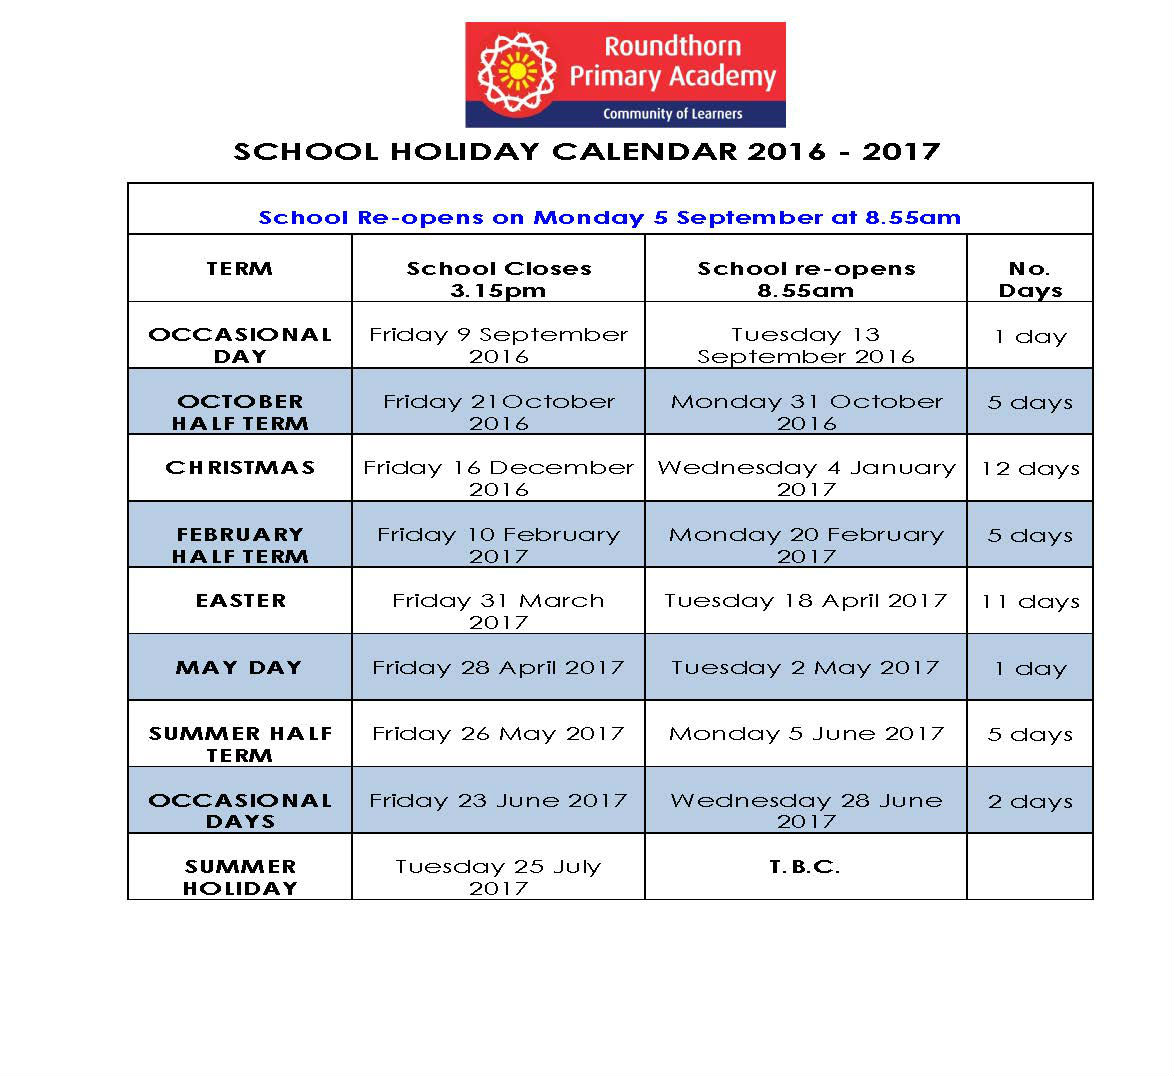 Roundthorn Holiday Calendar 2016-2017 revised.